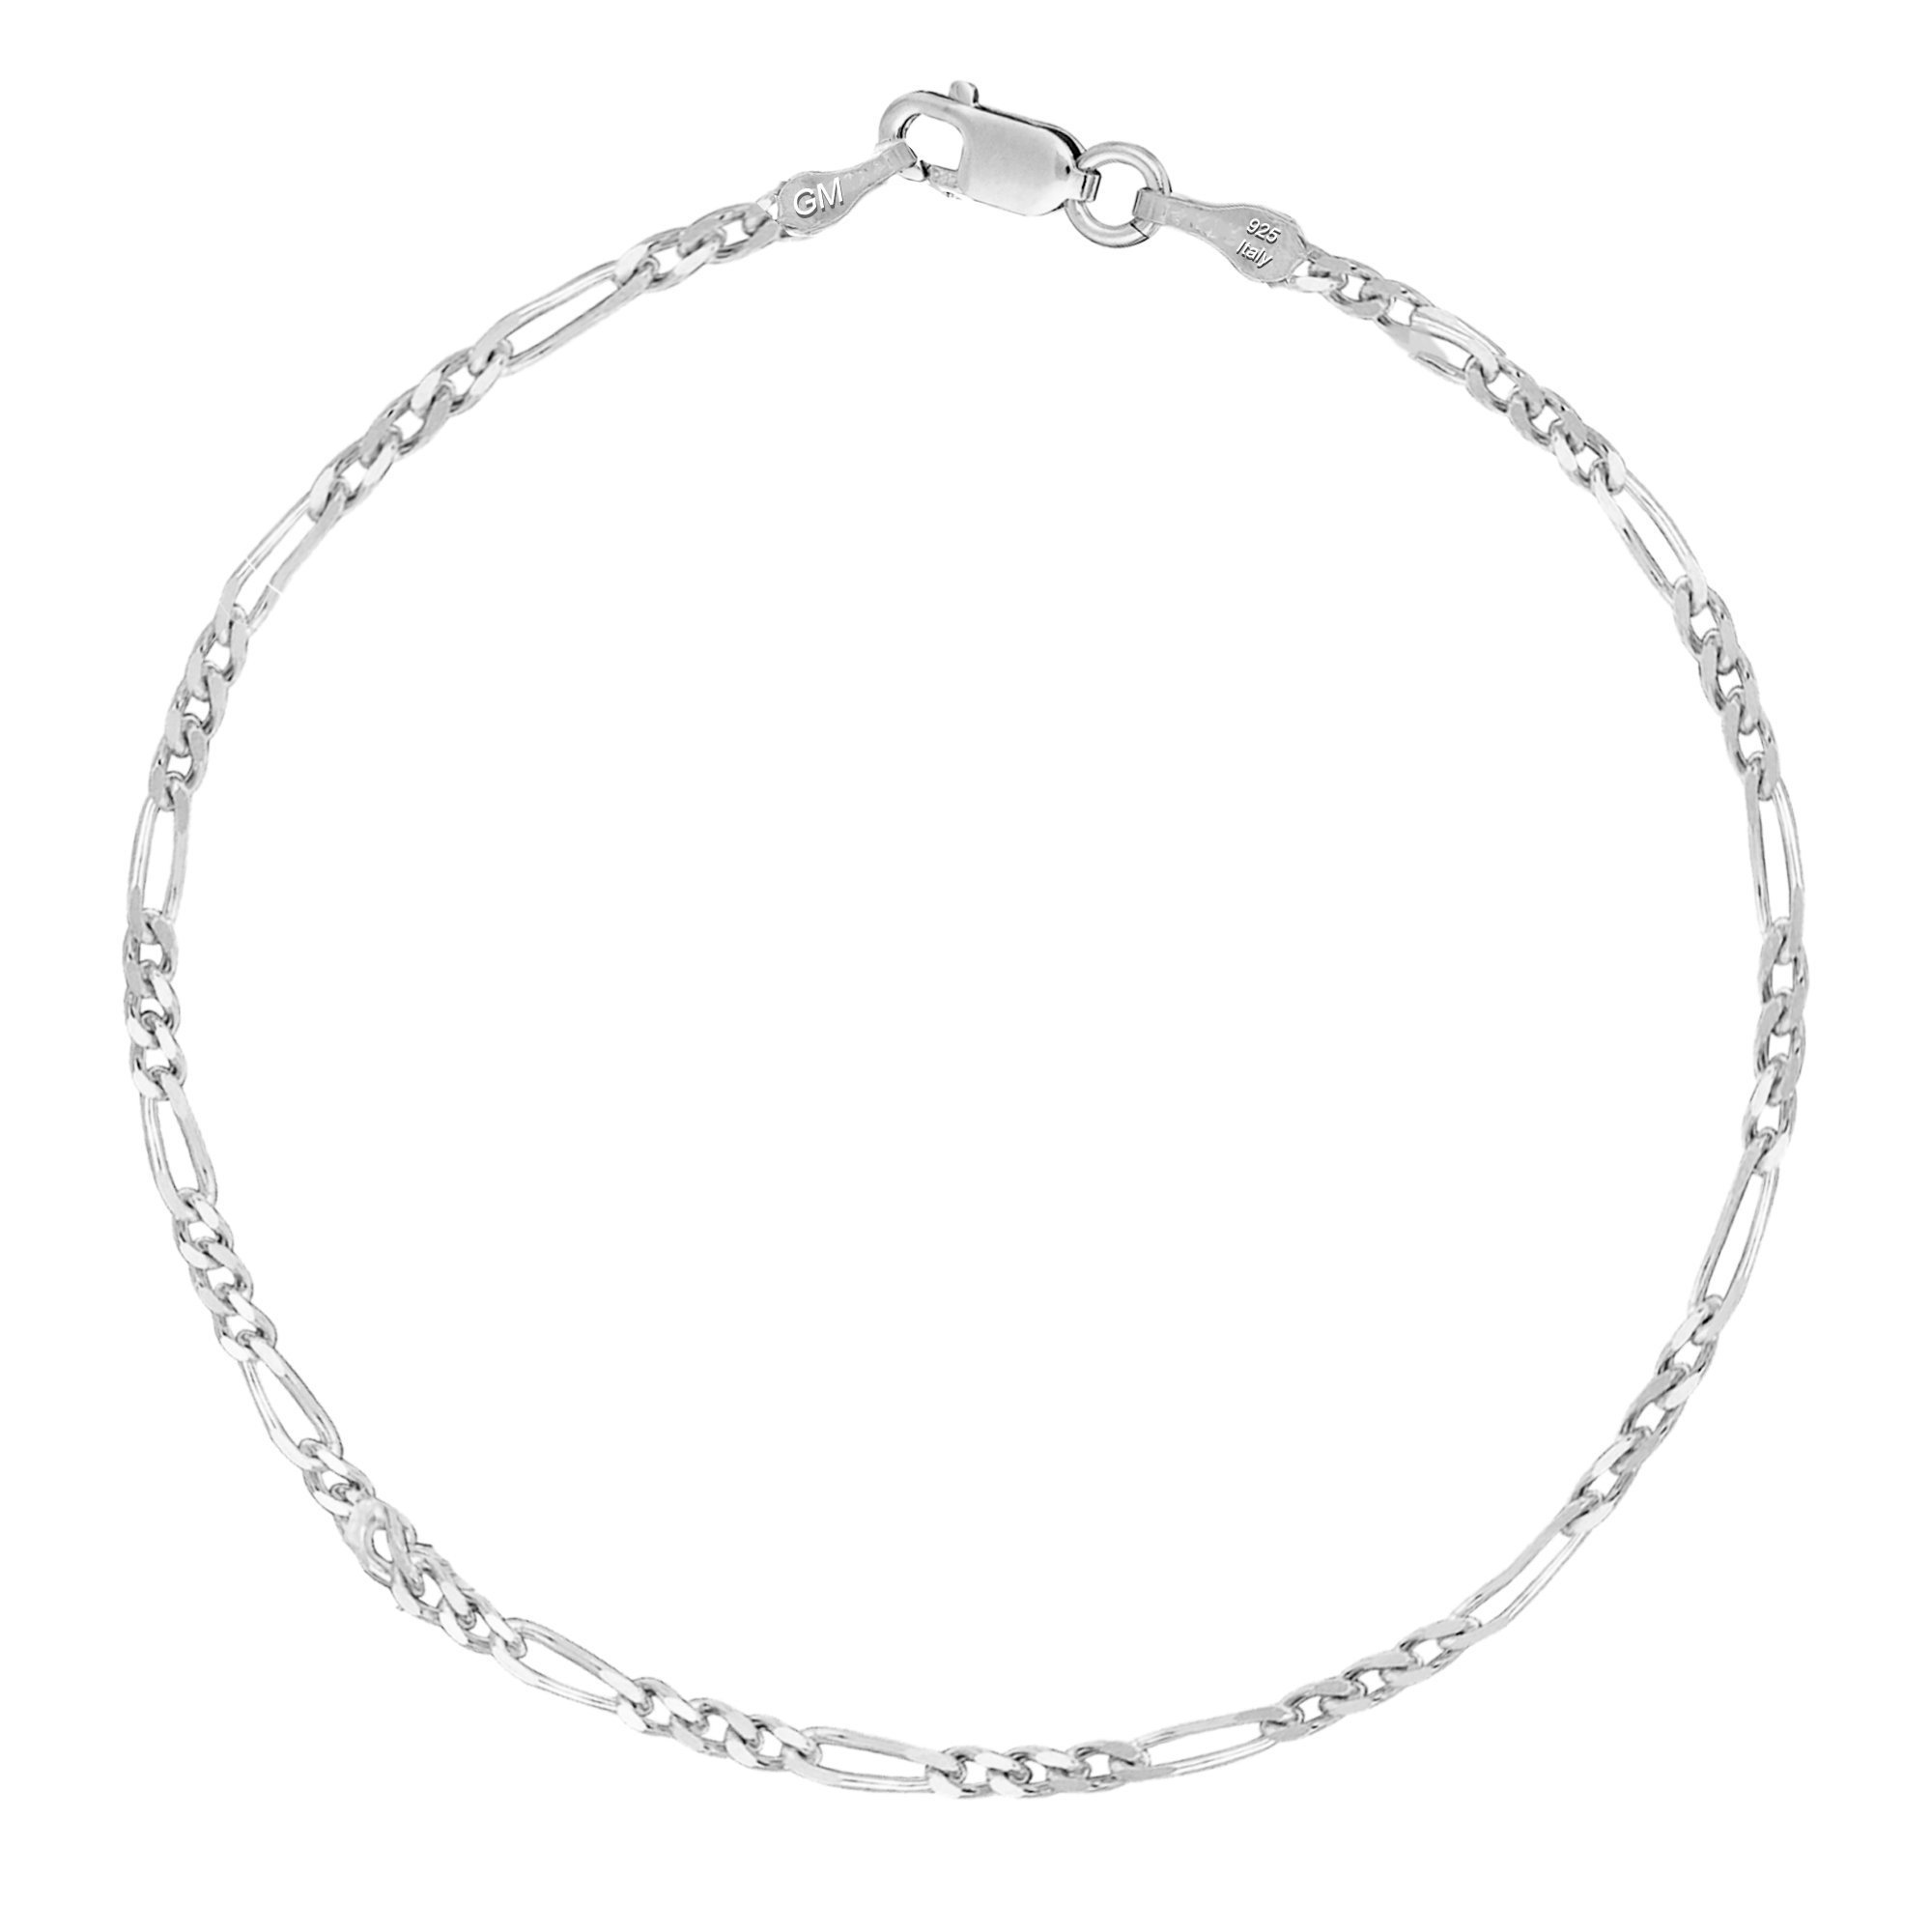 Sterling Silver or Gold-tone Italian Figaro Anklet or Bracelet 2.1mm Width